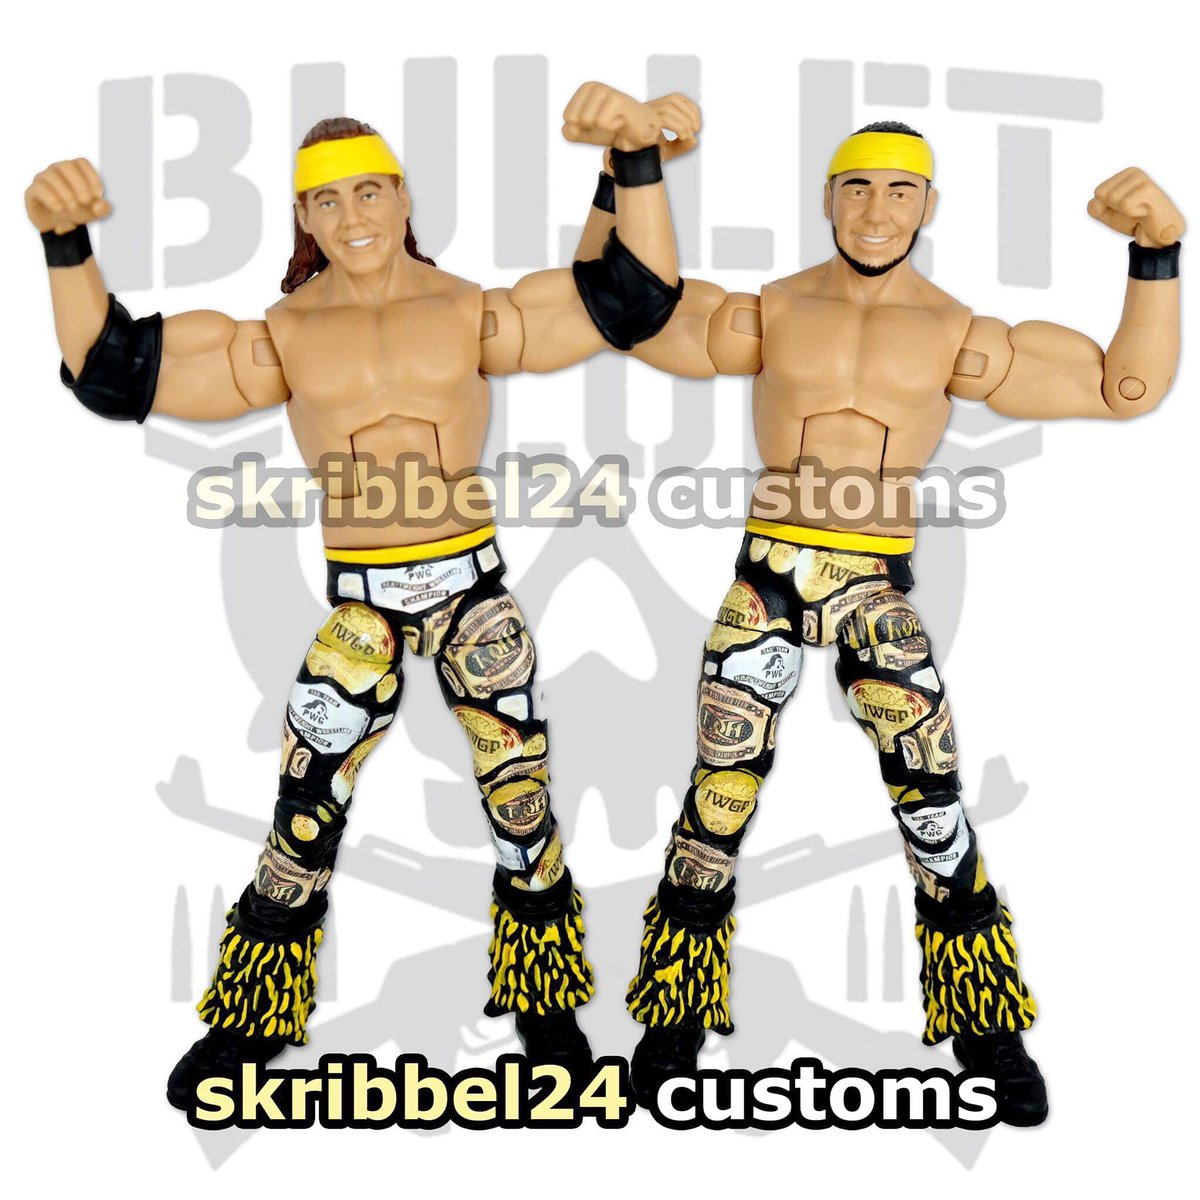 You are invited to the Superkick Party! #YoungBucks #skribbel24 @NickJacksonYB @MattJackson13